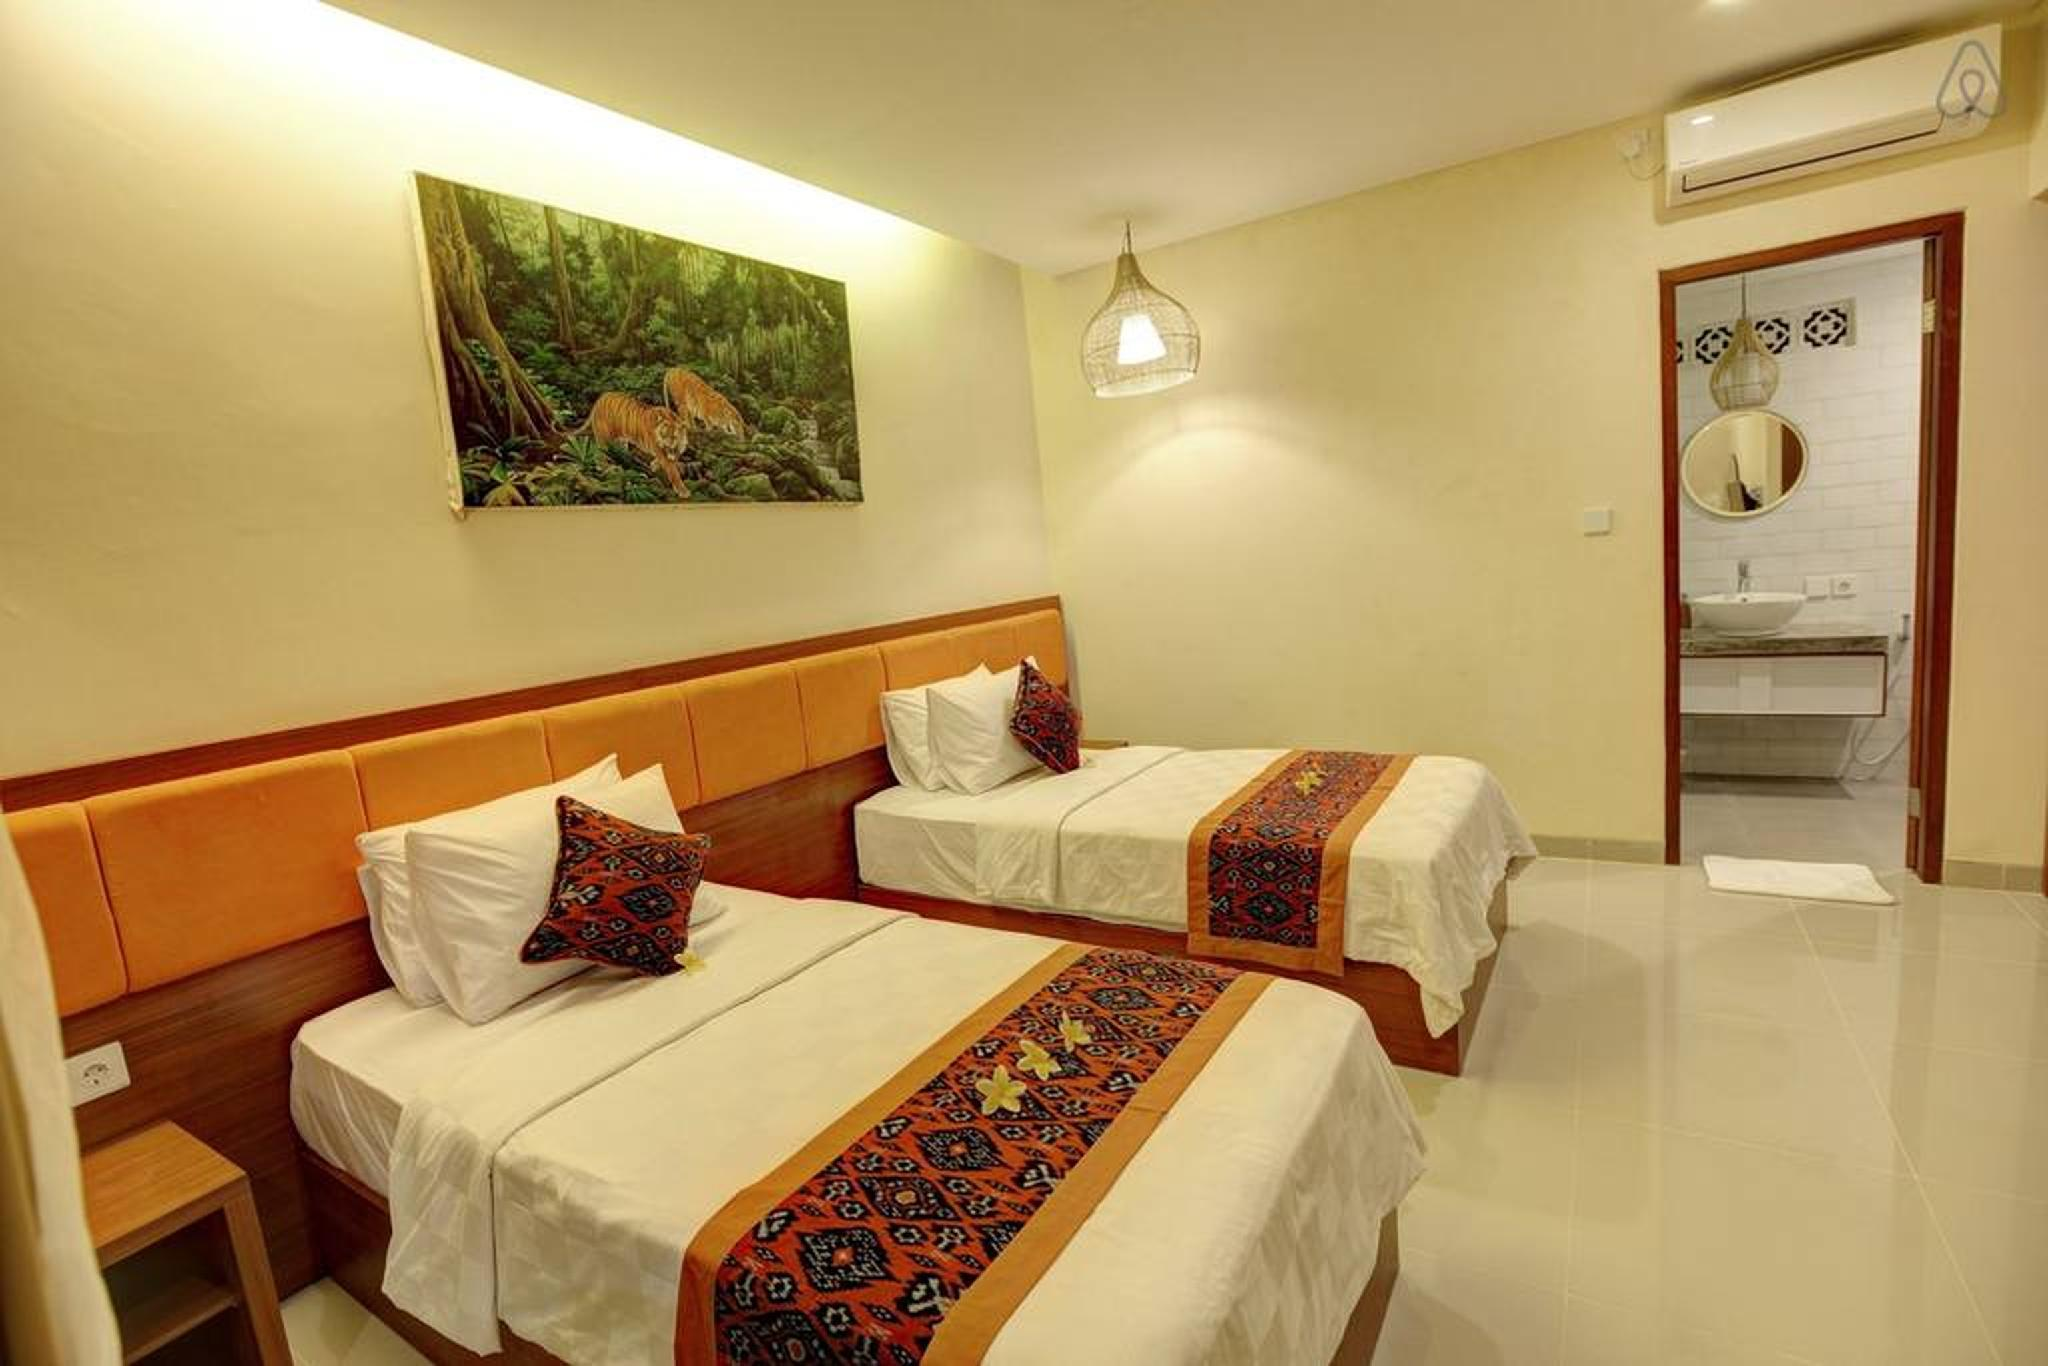 Best Room Close to Mankey forest Ubud